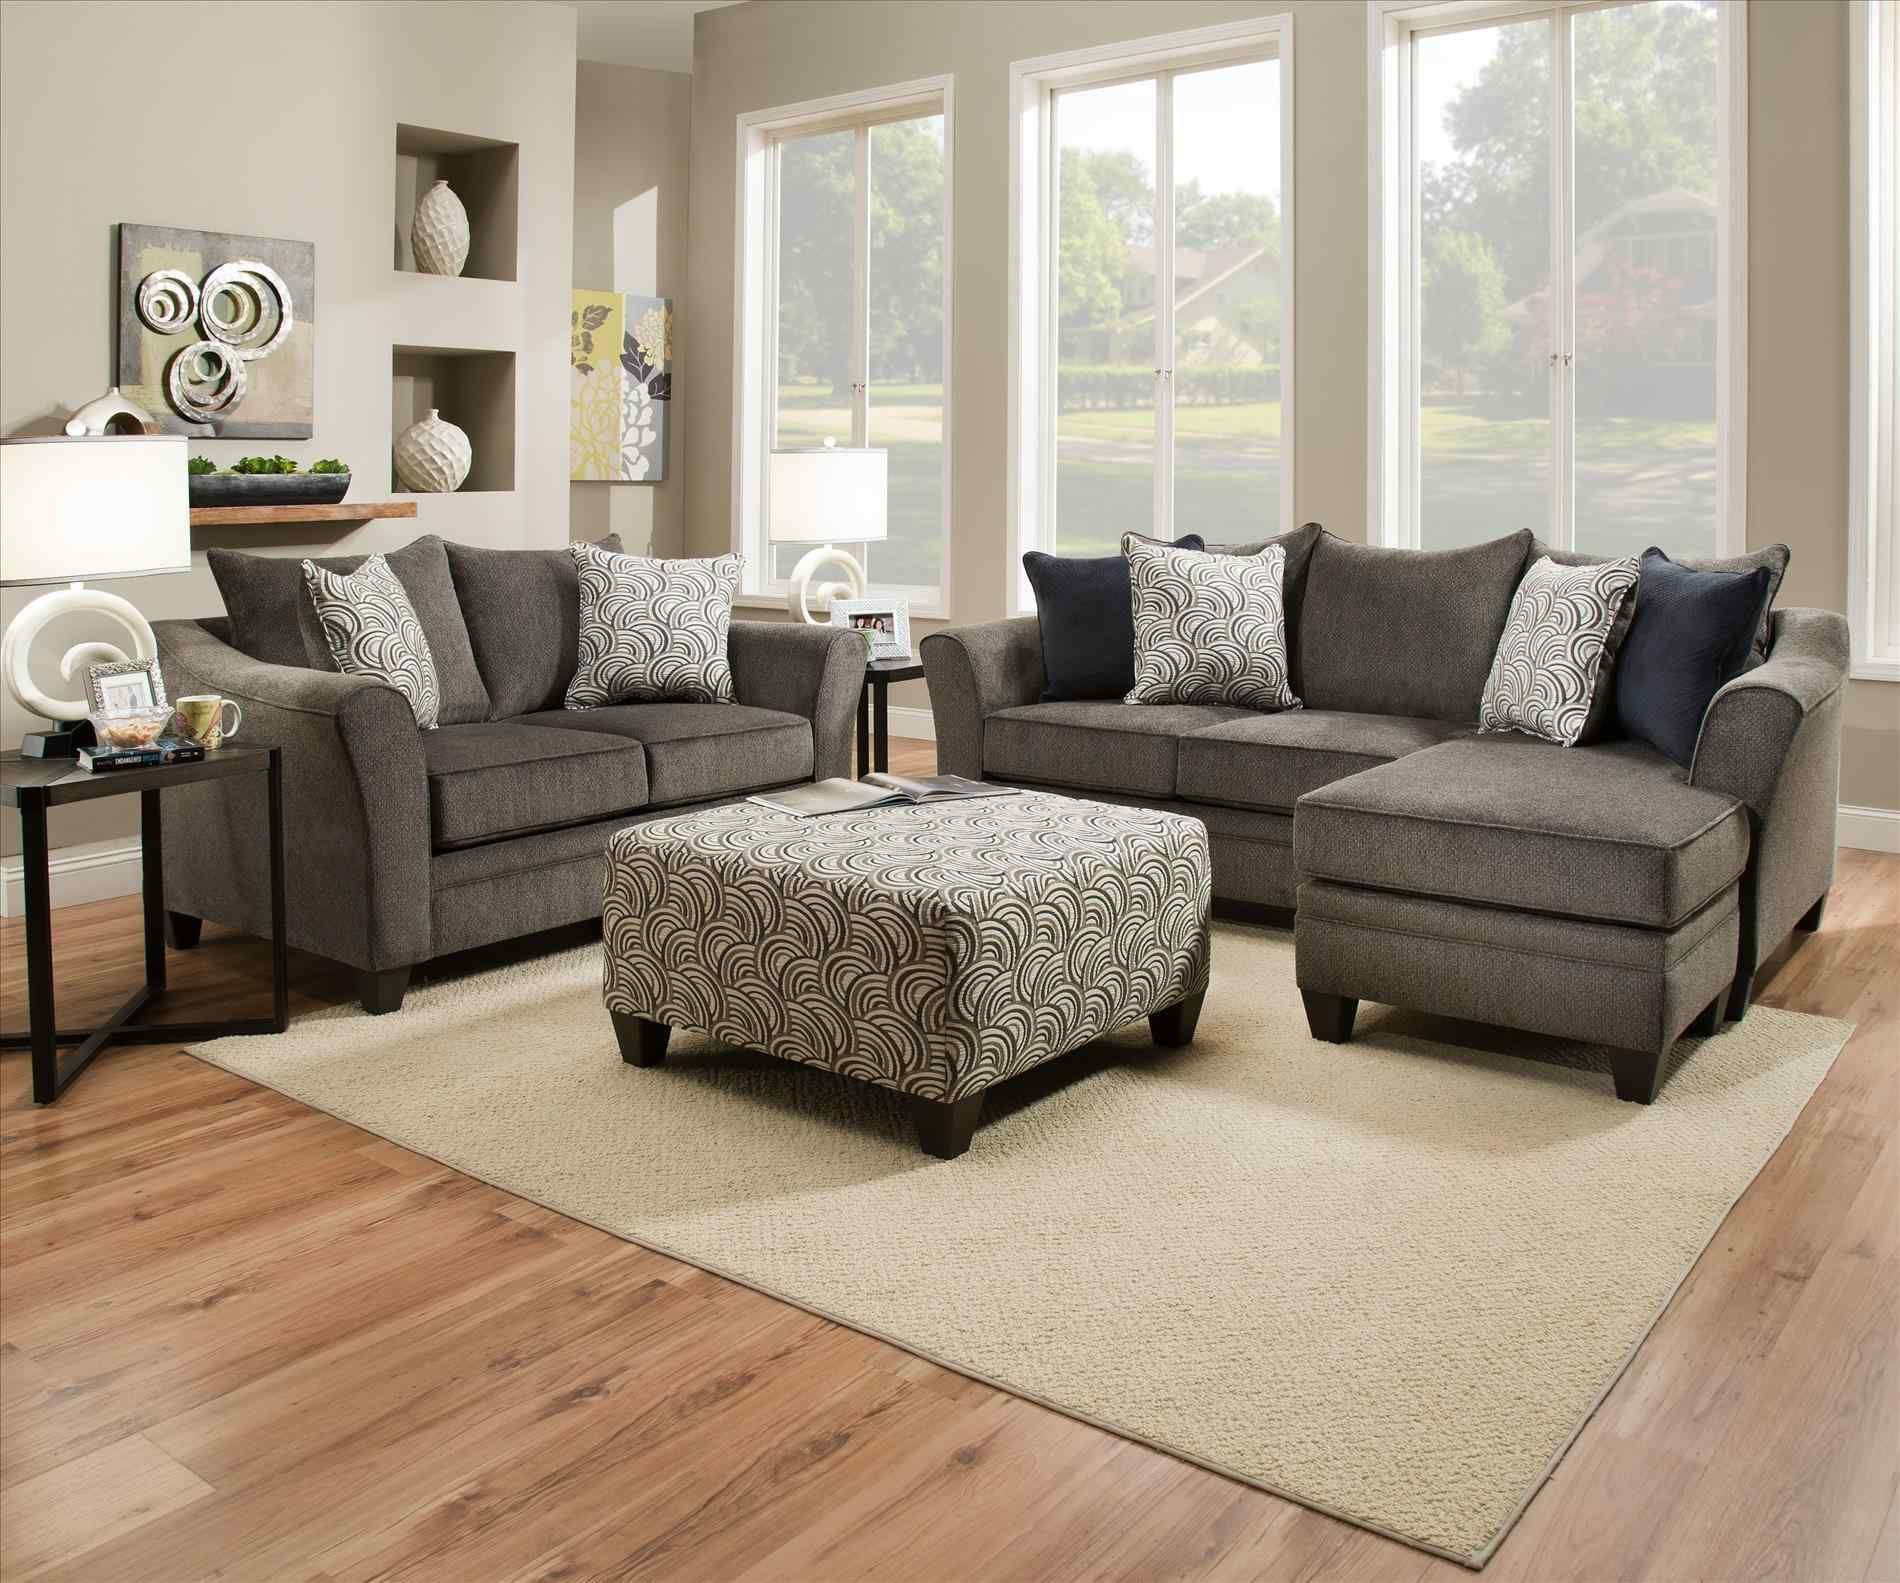 albany industries leather sofa american signature furniture raymour